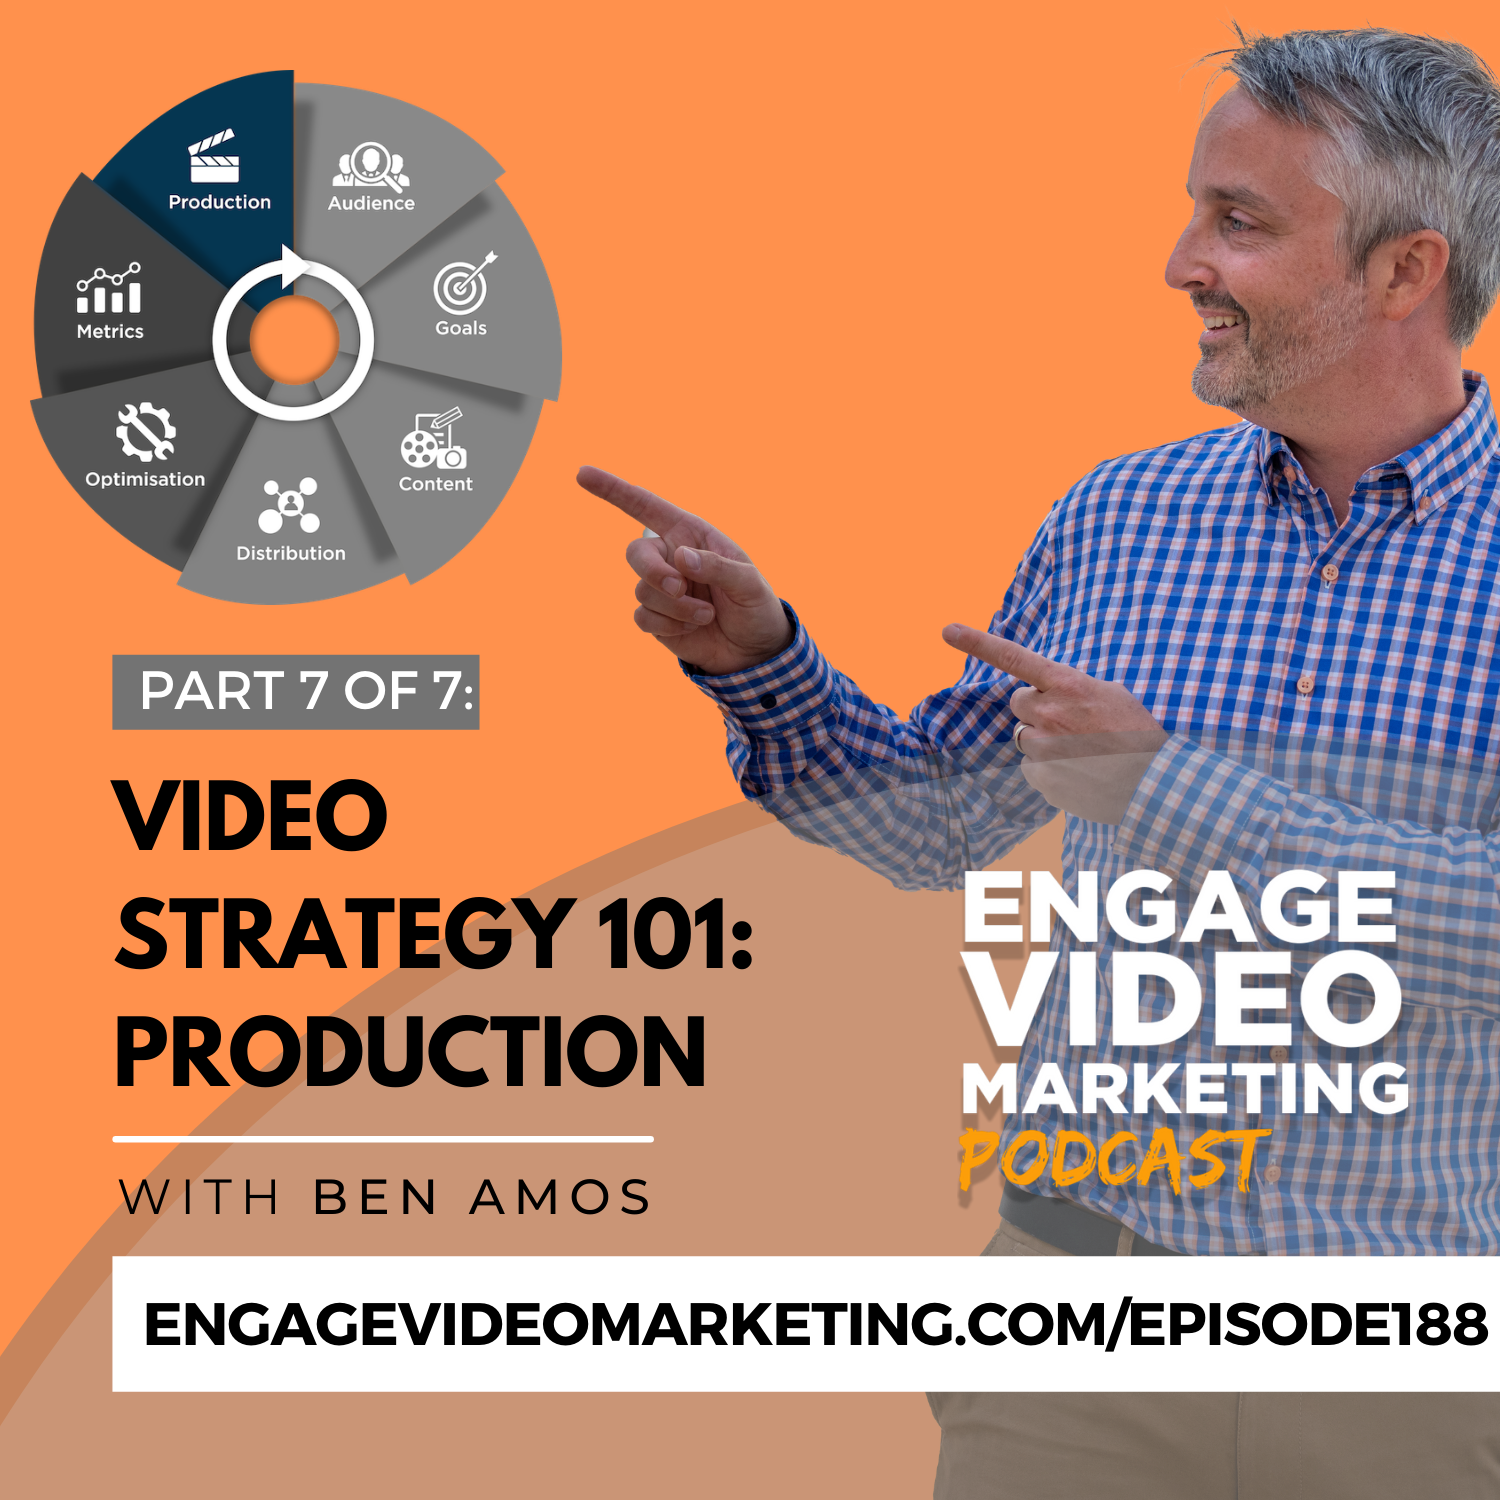 Video Strategy 101: Production